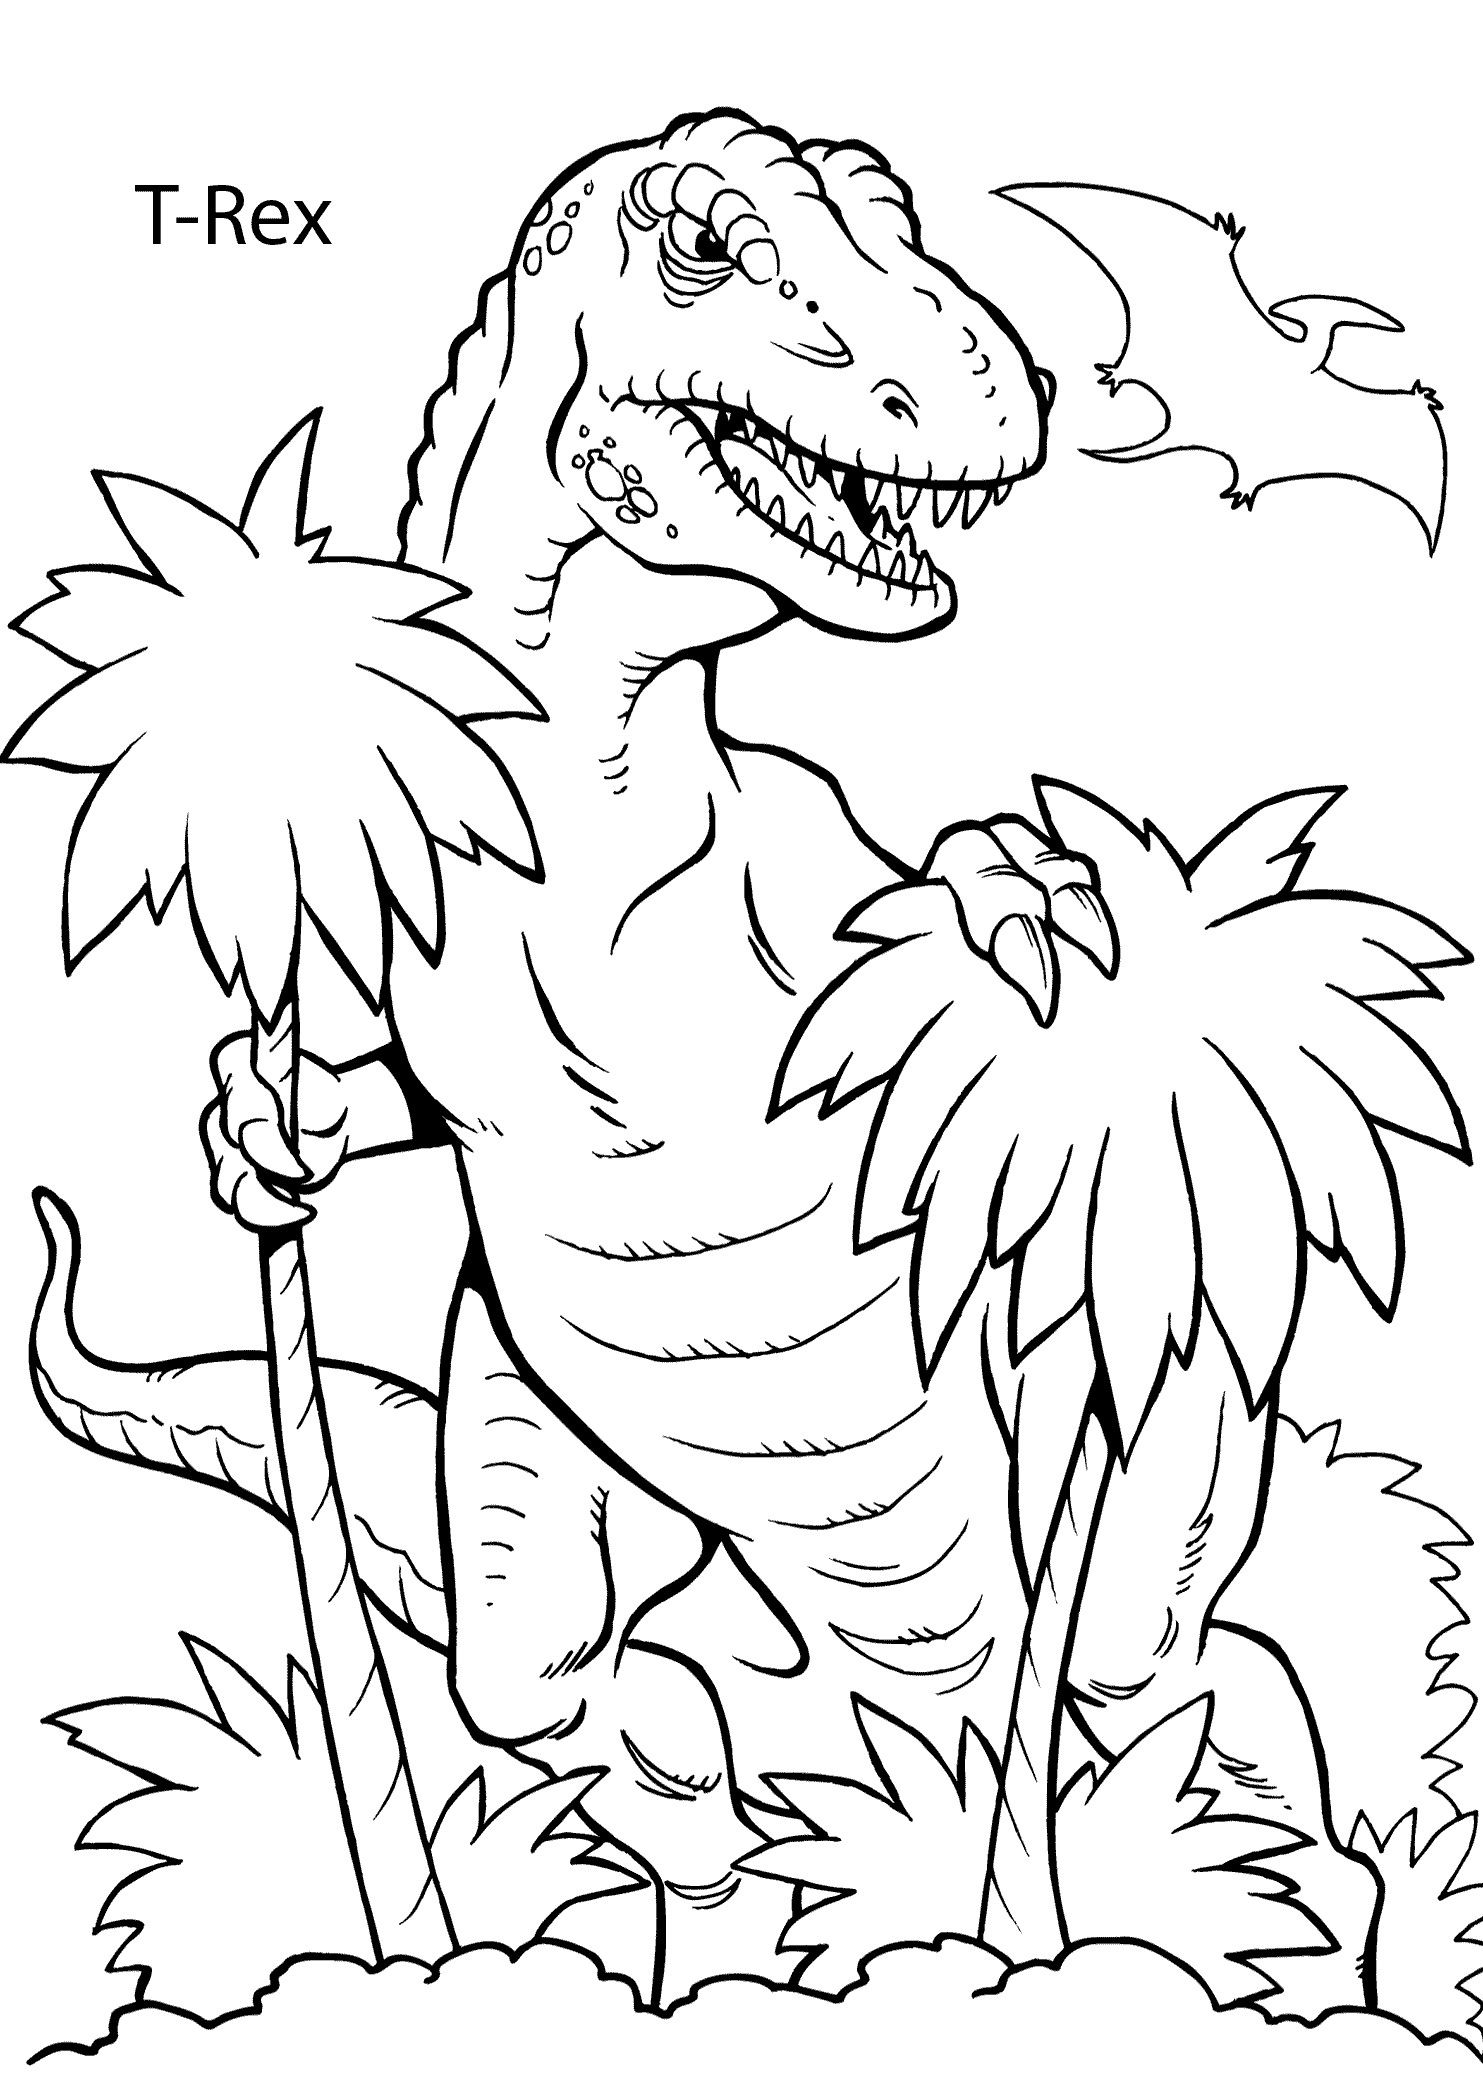 Artistic Coloring Pages Dinosaurs Printable Novaukraina Spring Coloring Pages Animal Coloring Pages Dinosaur Coloring Sheets